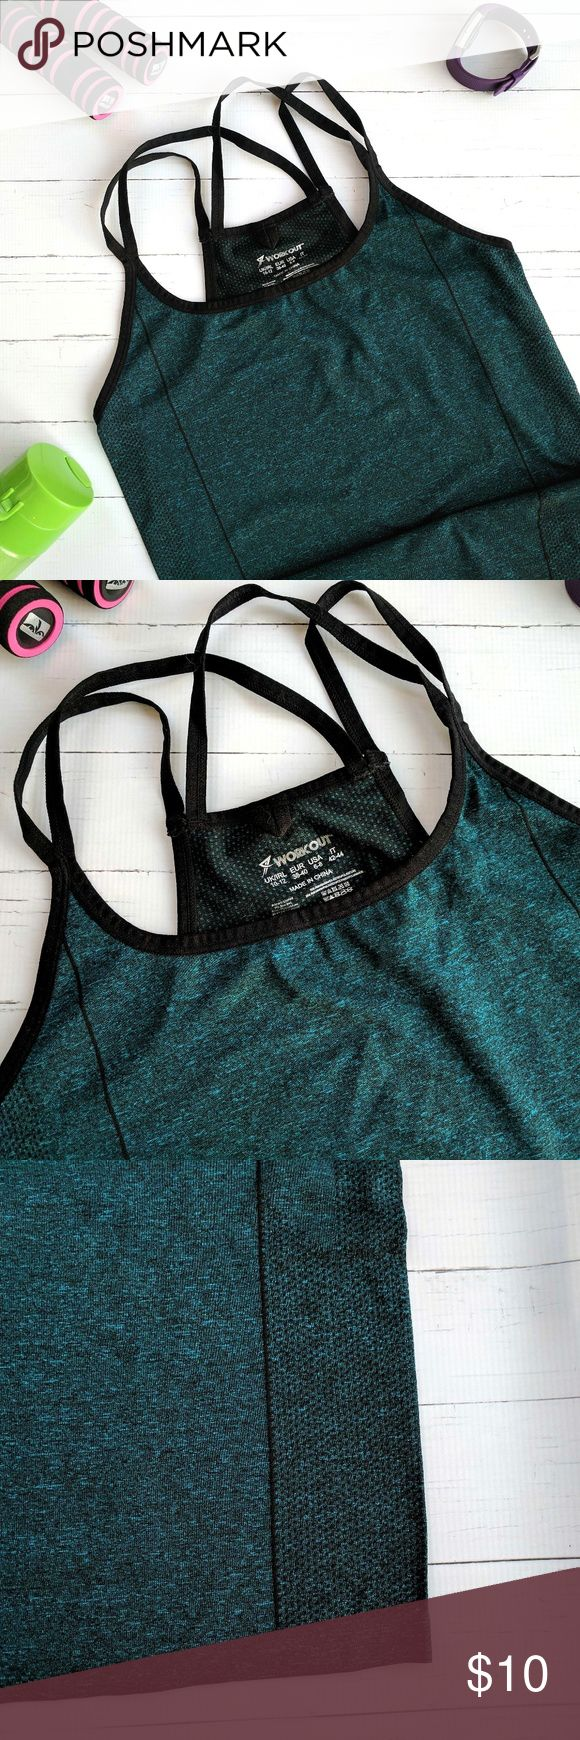 Primark Workout Tank / Hunter Green NWOT Primark Workout Tank  Beautiful Hunter Green and black Size Small Criss cross straps in back / dotted detail along sides and on backside NWOT Primark Tops Tank Tops